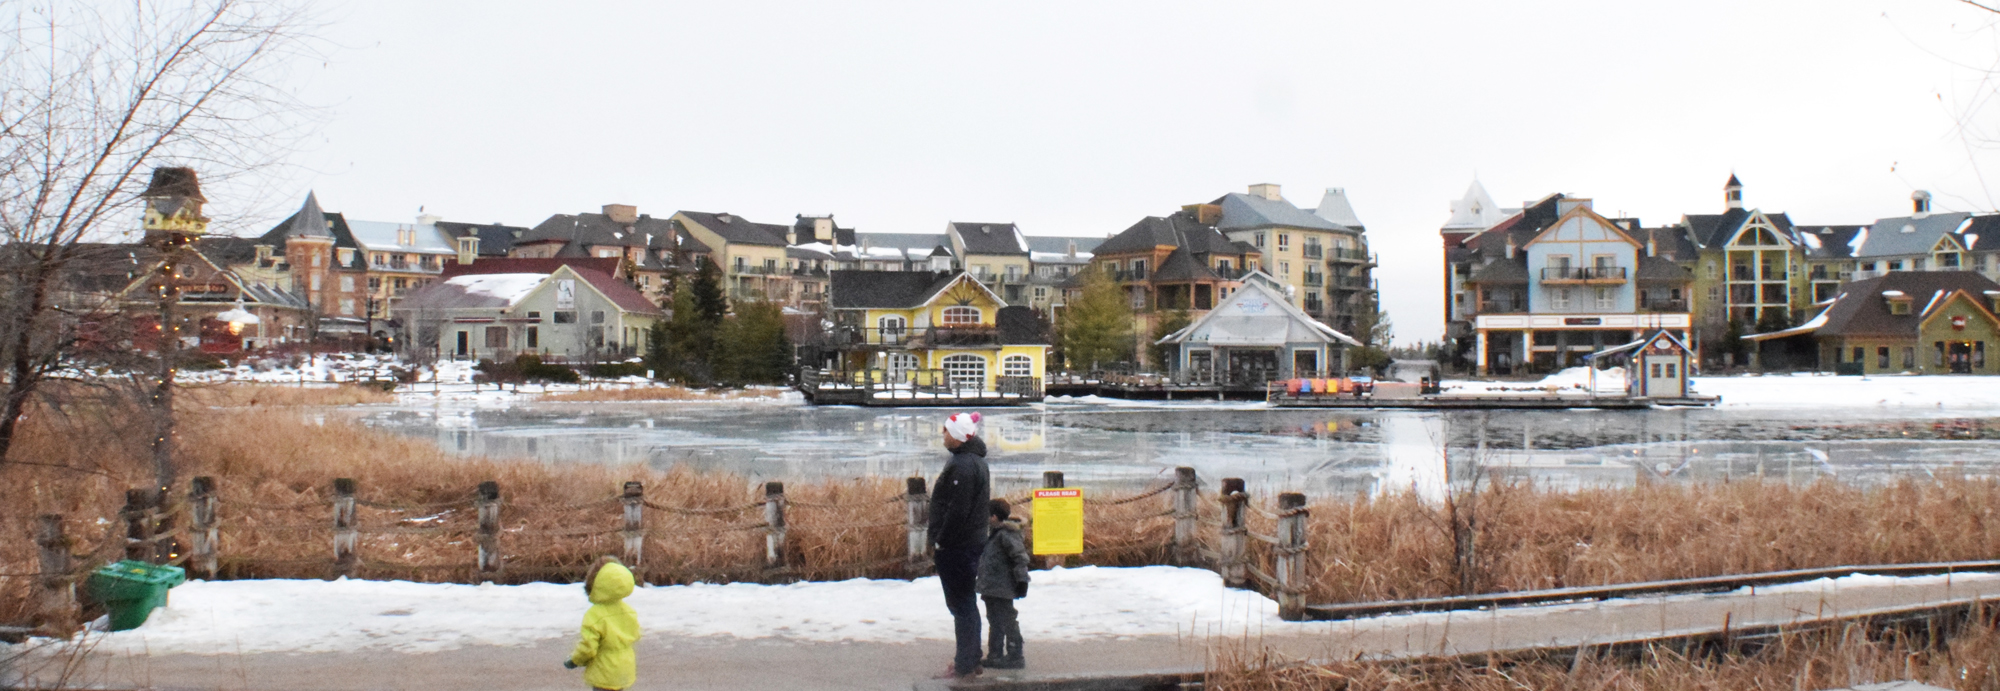 Your view of Blue Mountain Village when you leave through the back doors of The Westin Trillium House.